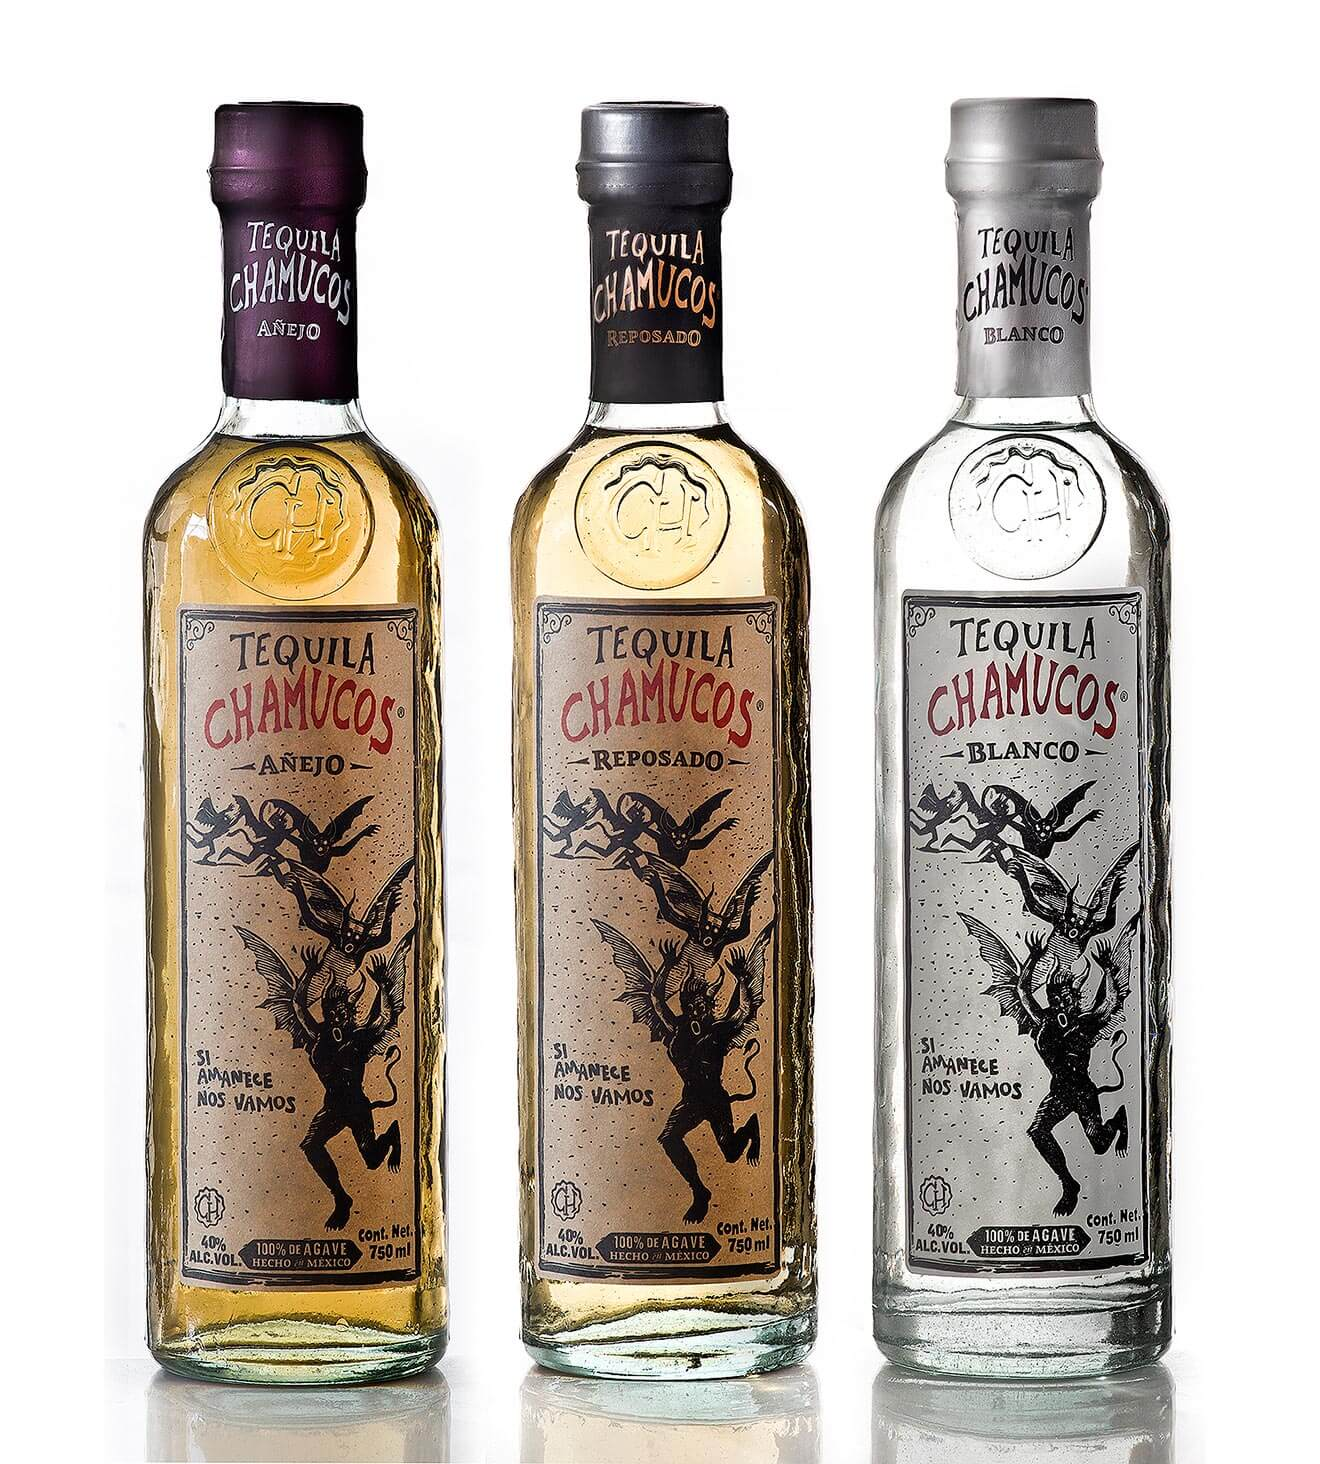 Tequila Chamucos Lineup